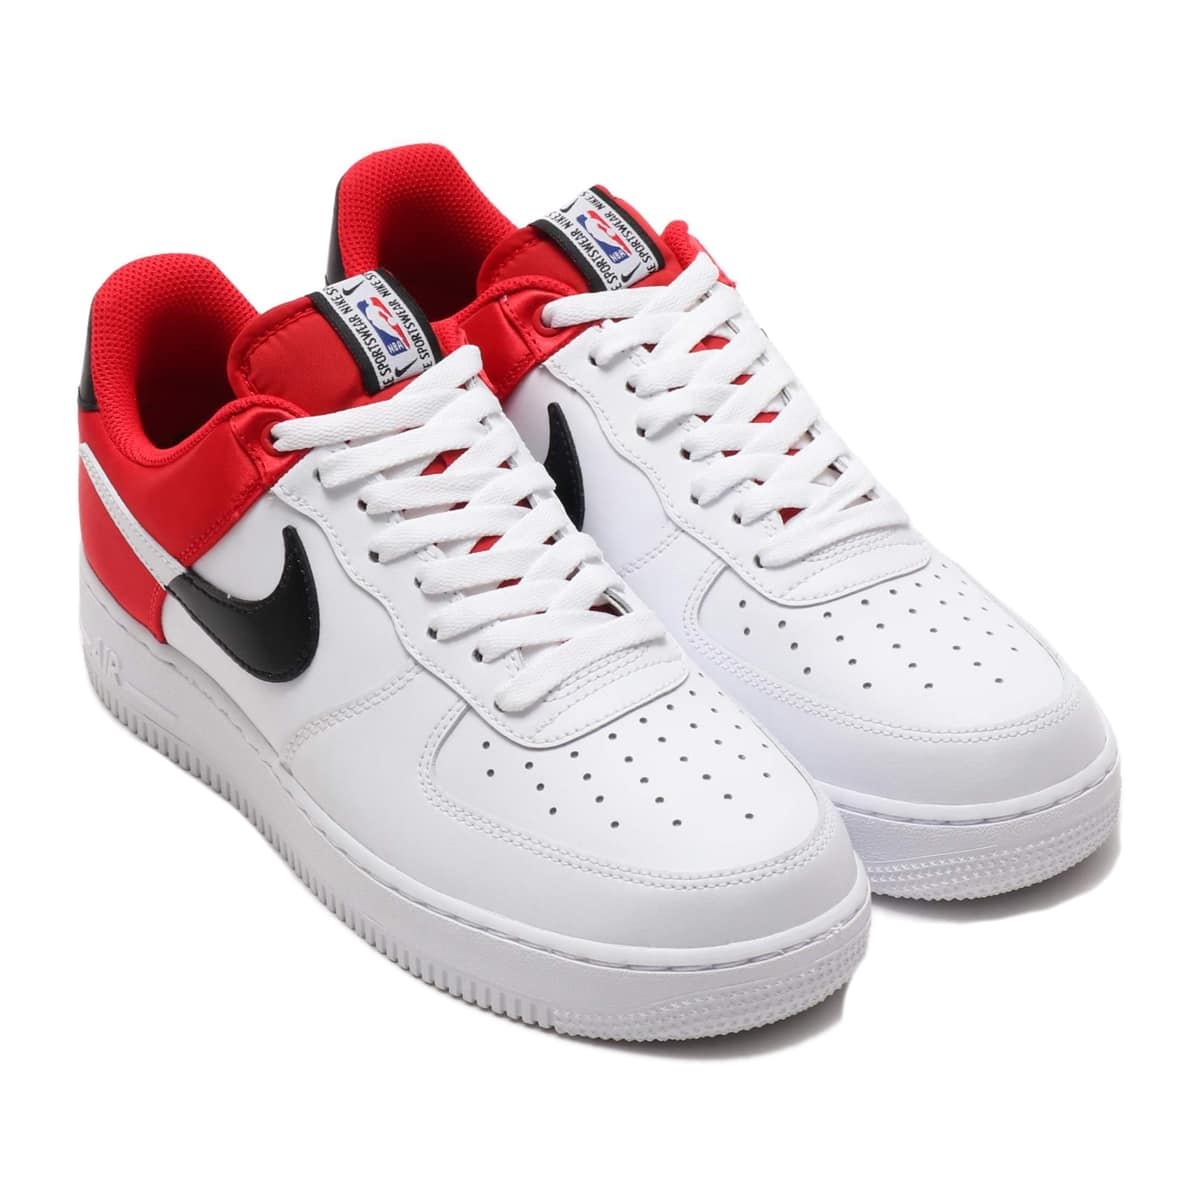 NIKE AIR FORCE 1 '07 LV8 1 UNIVERSITY RED/WHITE-BLACK-WHITE 19HO-S_photo_large